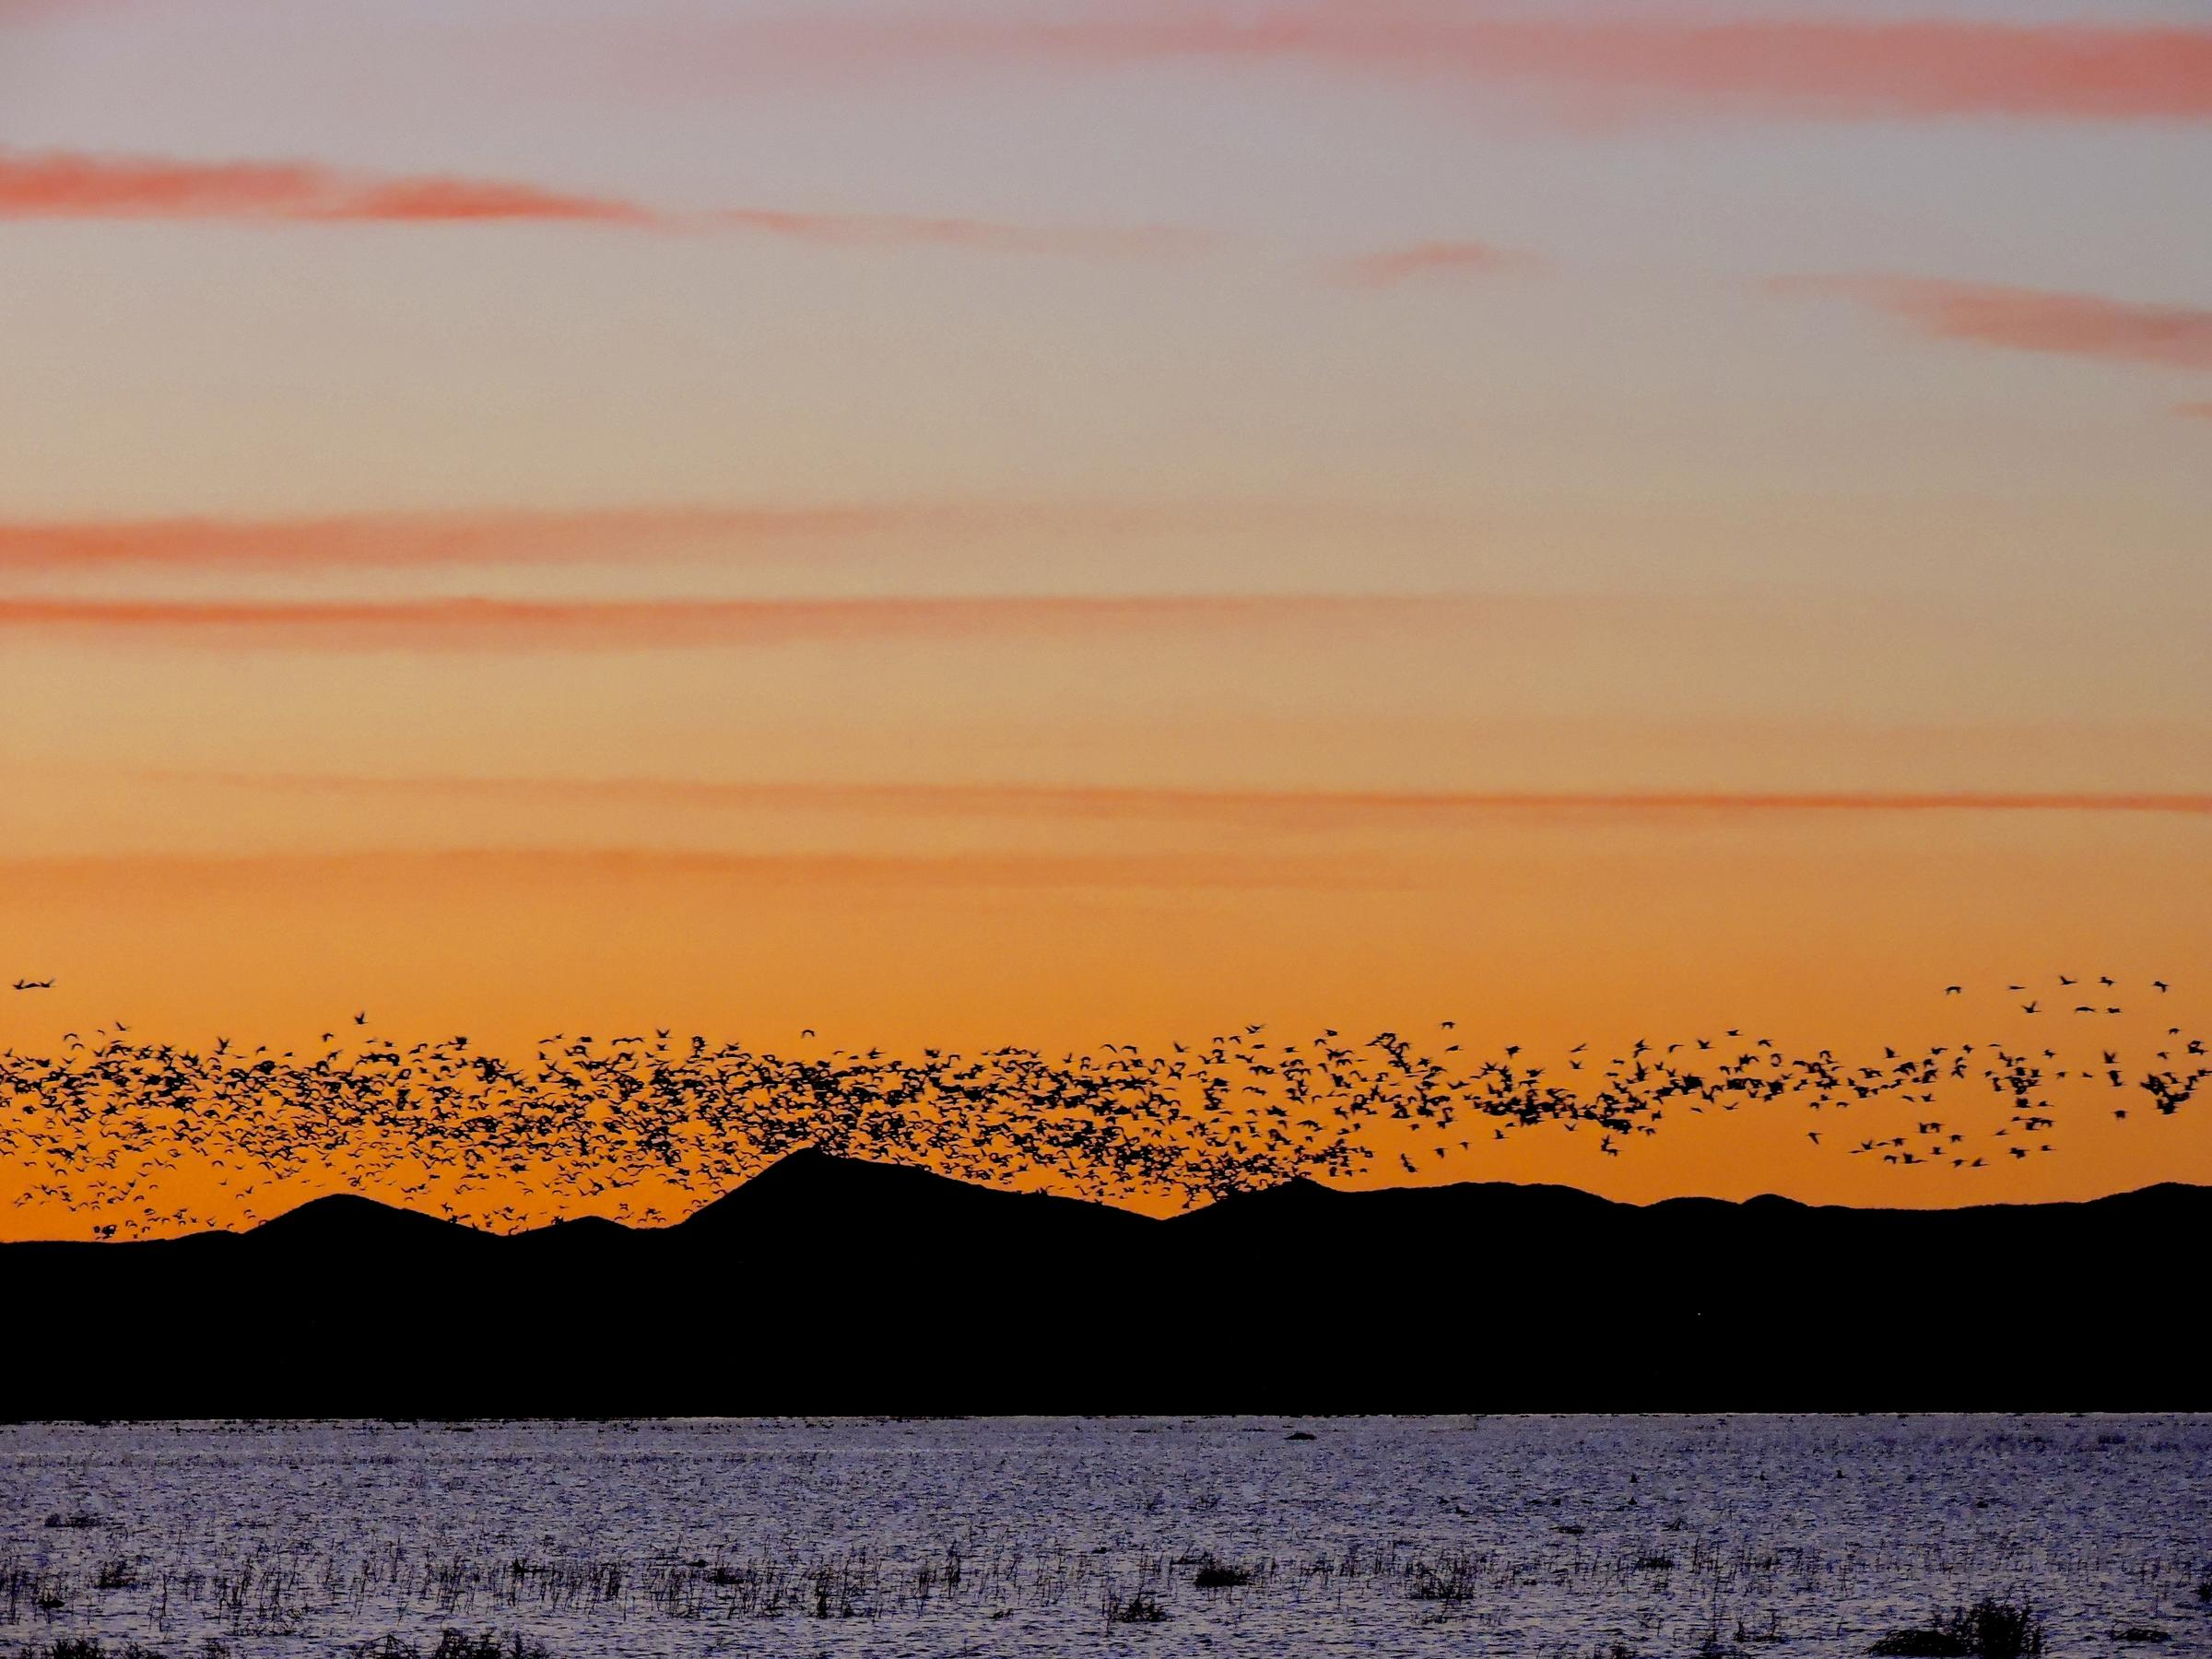 Flock of Sandhill Cranes flying into Whitewater Draw at dusk